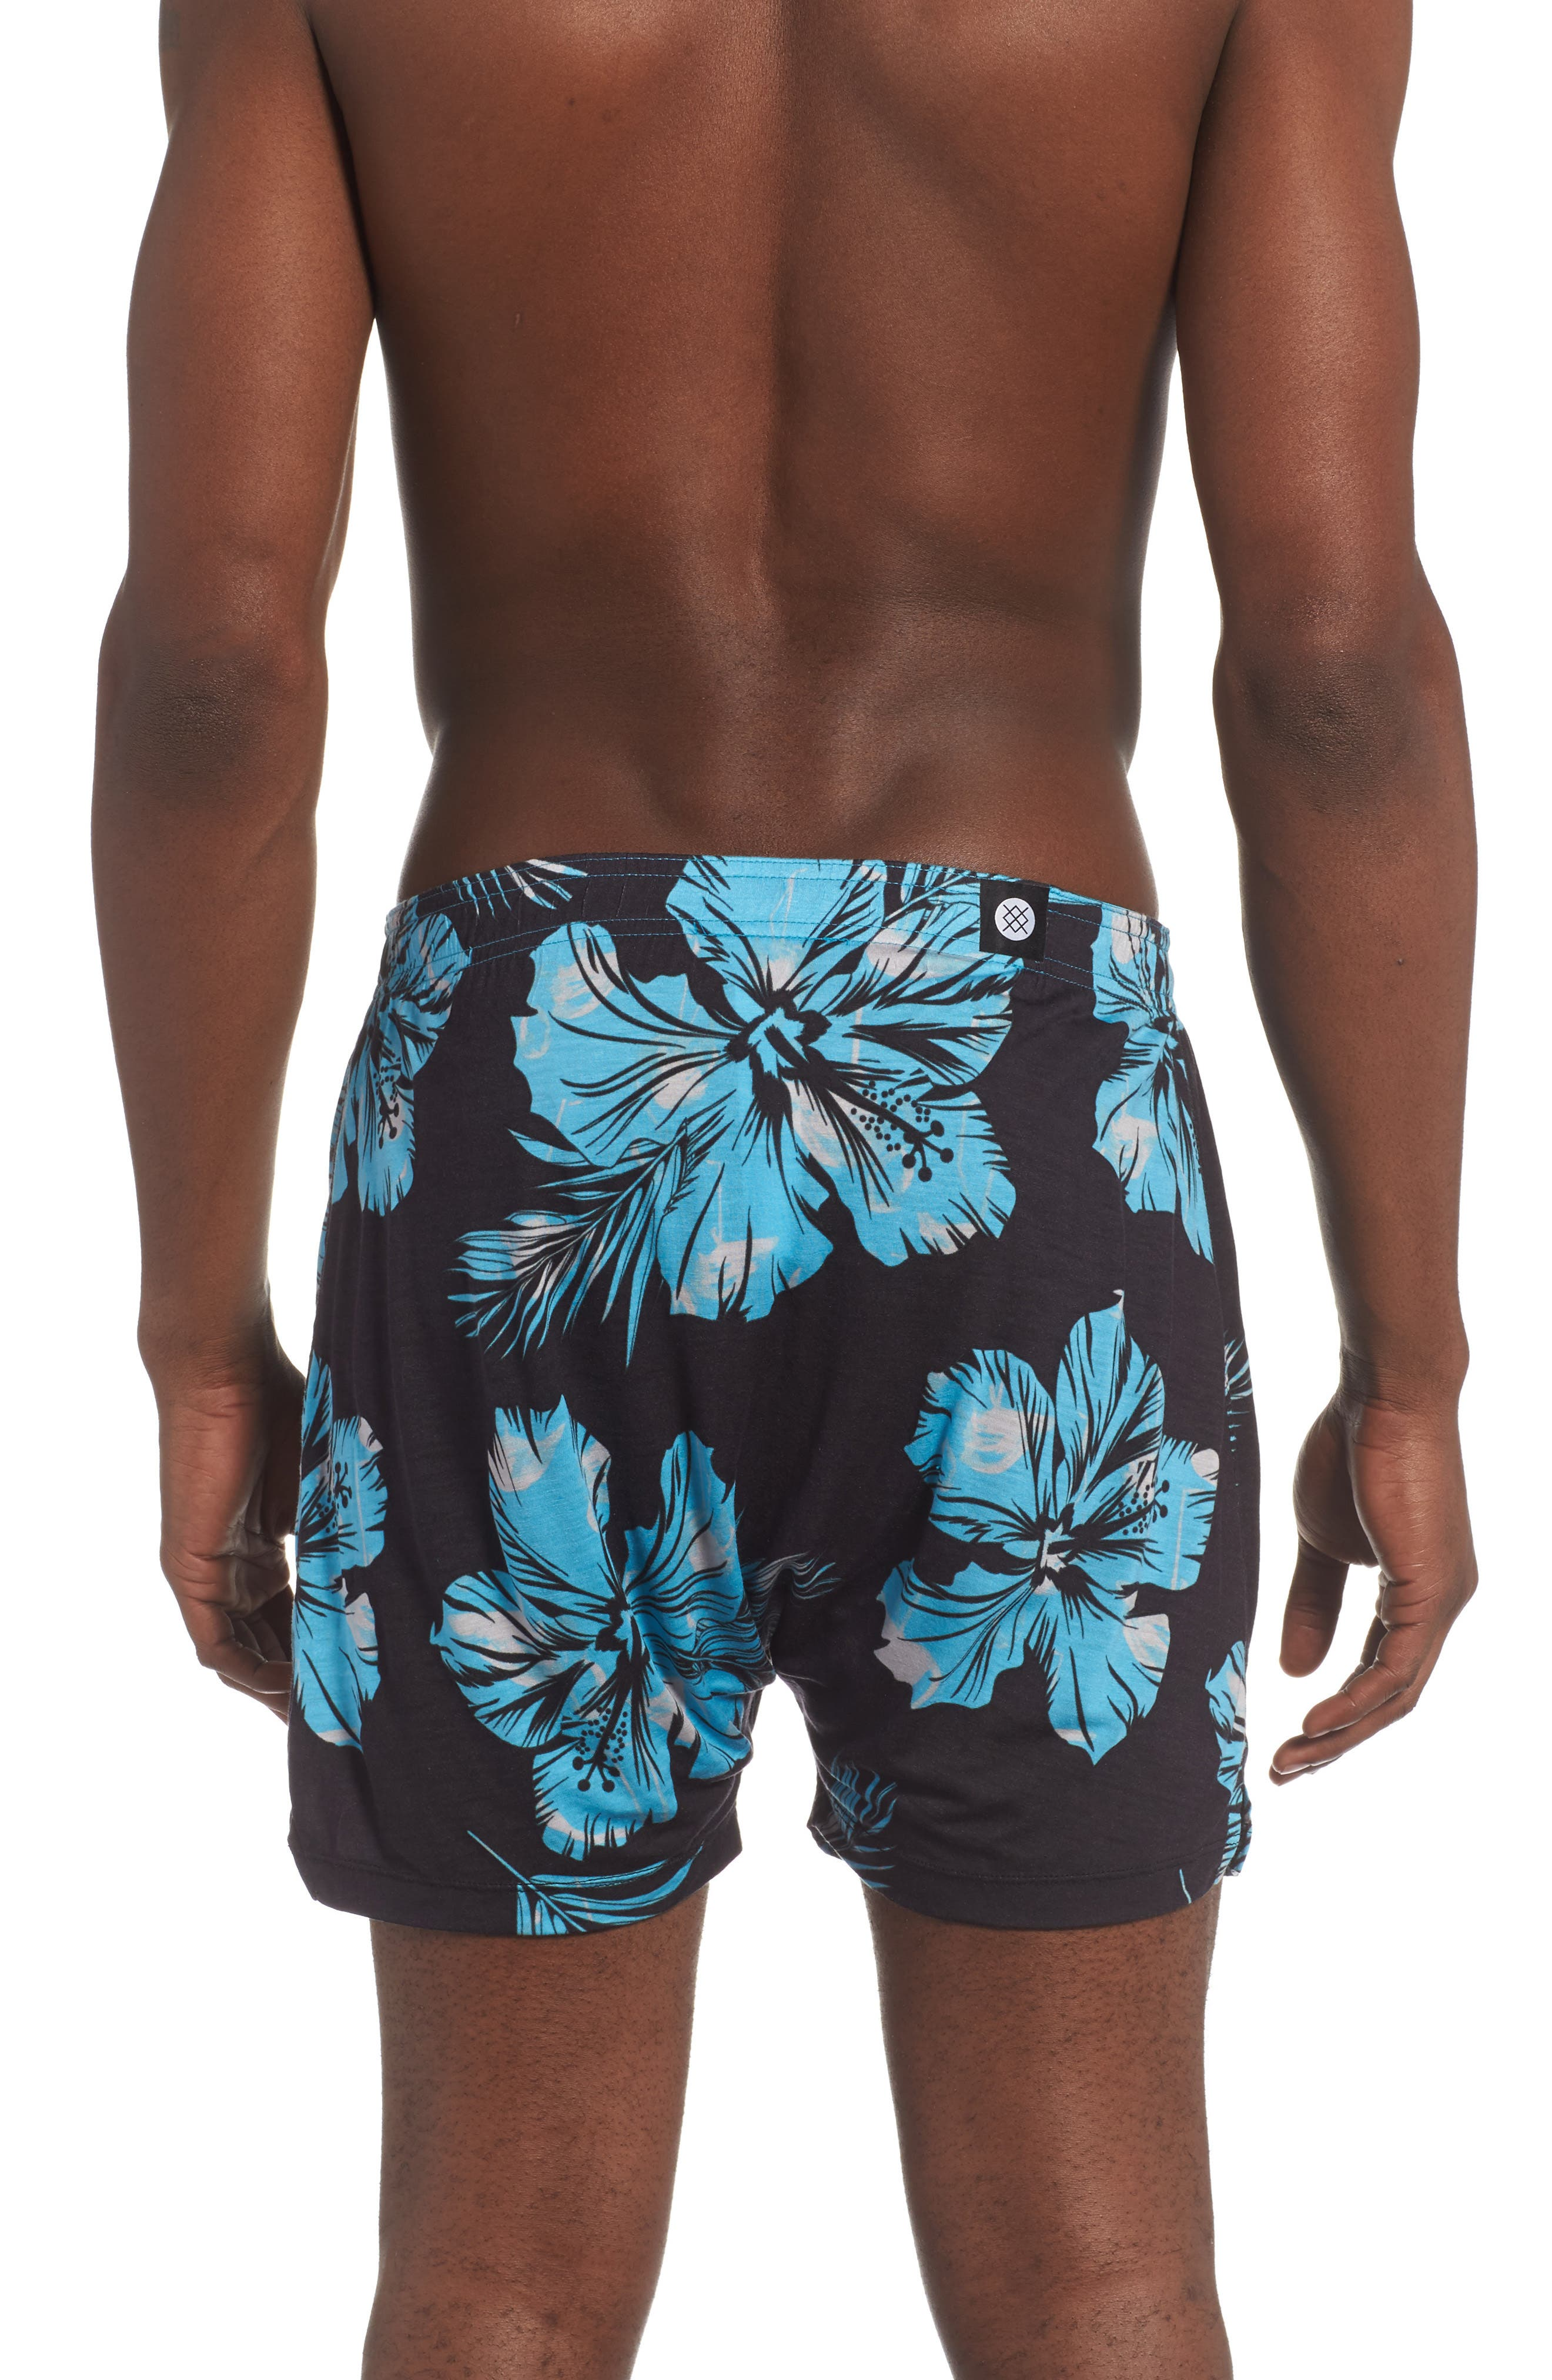 Mercato Flamingo Flowers Boxer Briefs,                             Alternate thumbnail 2, color,                             Blue